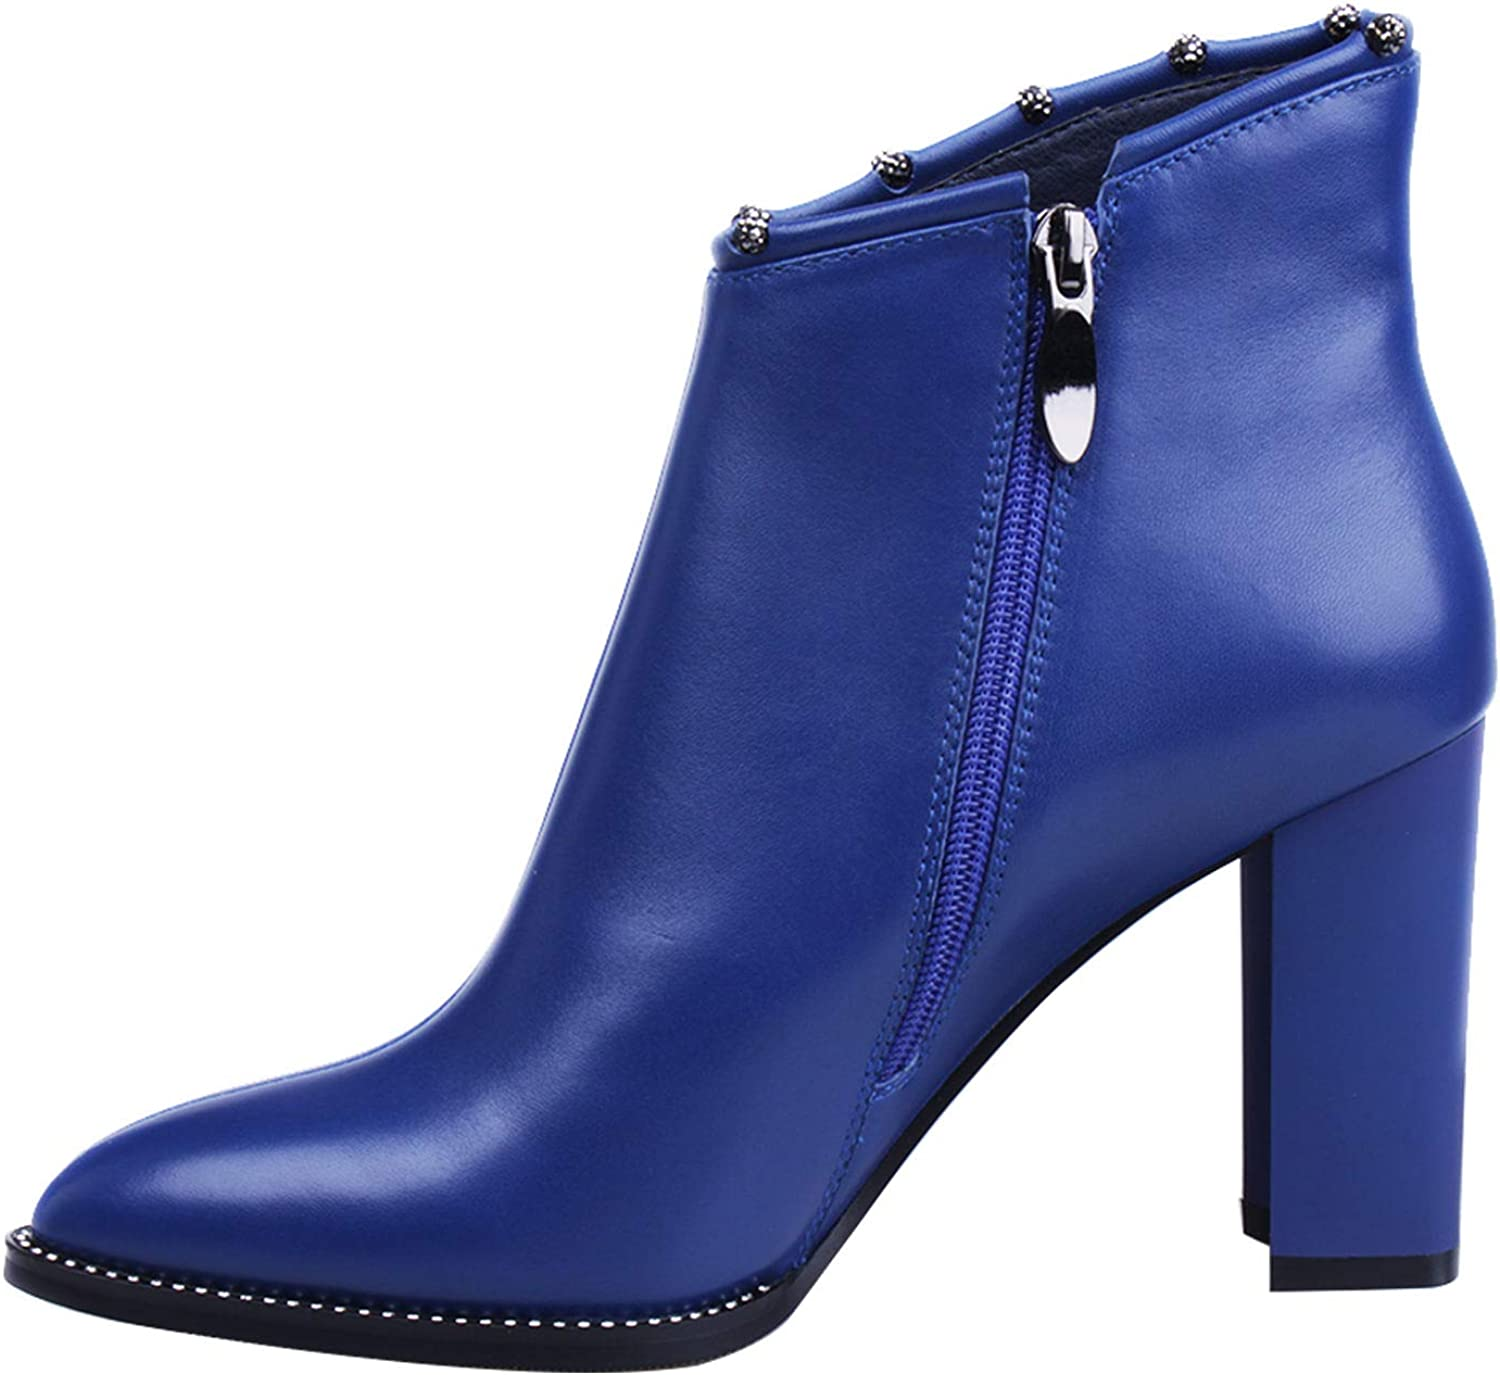 MARHEE 9.1cm Genuine Leather Pumps Winter Kid Suede Boot Woman Side Zip Boots Square Heels Crystal Shoes